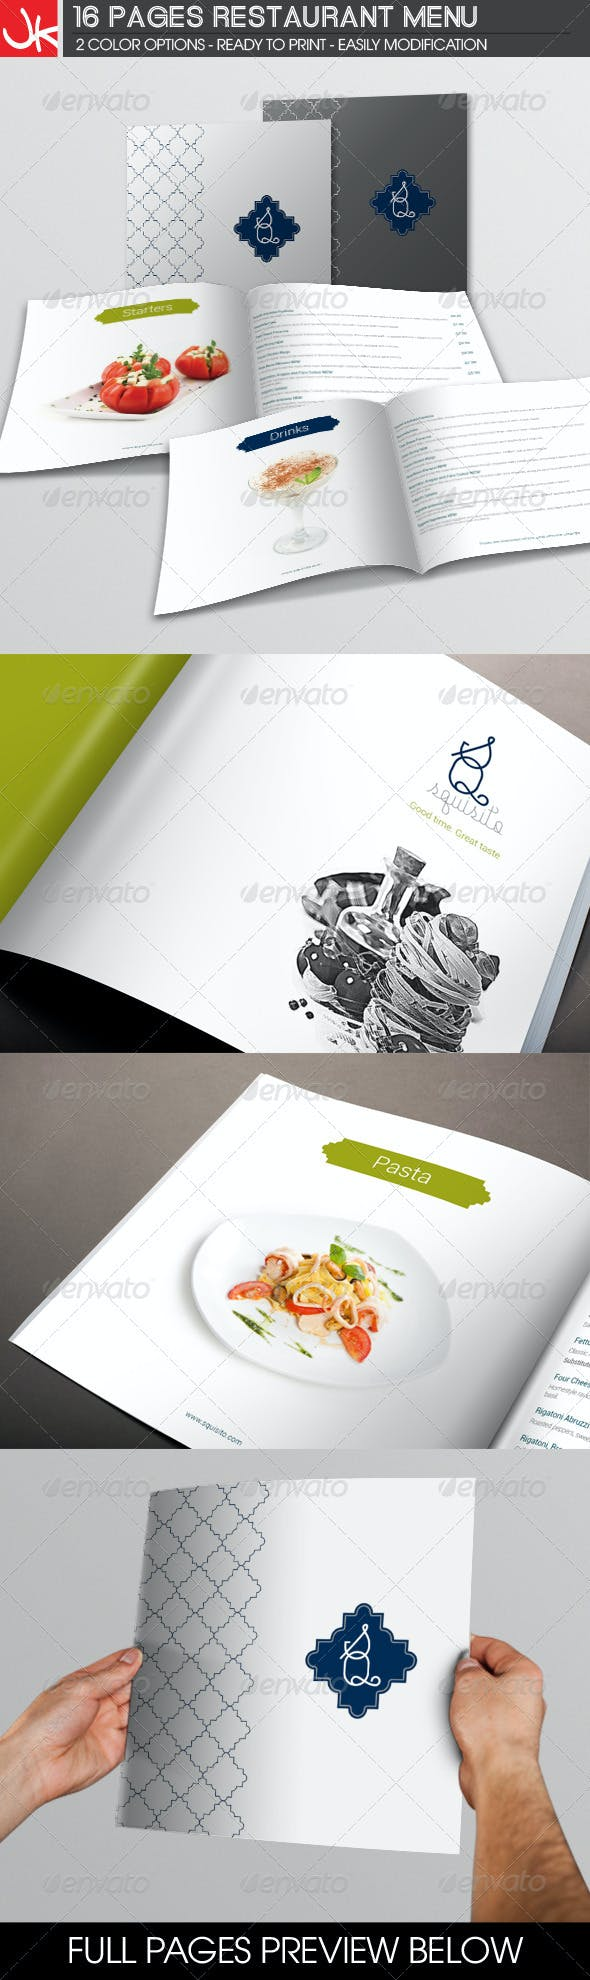 16 pages restaurant menu by jjjaaayyydeng graphicriver